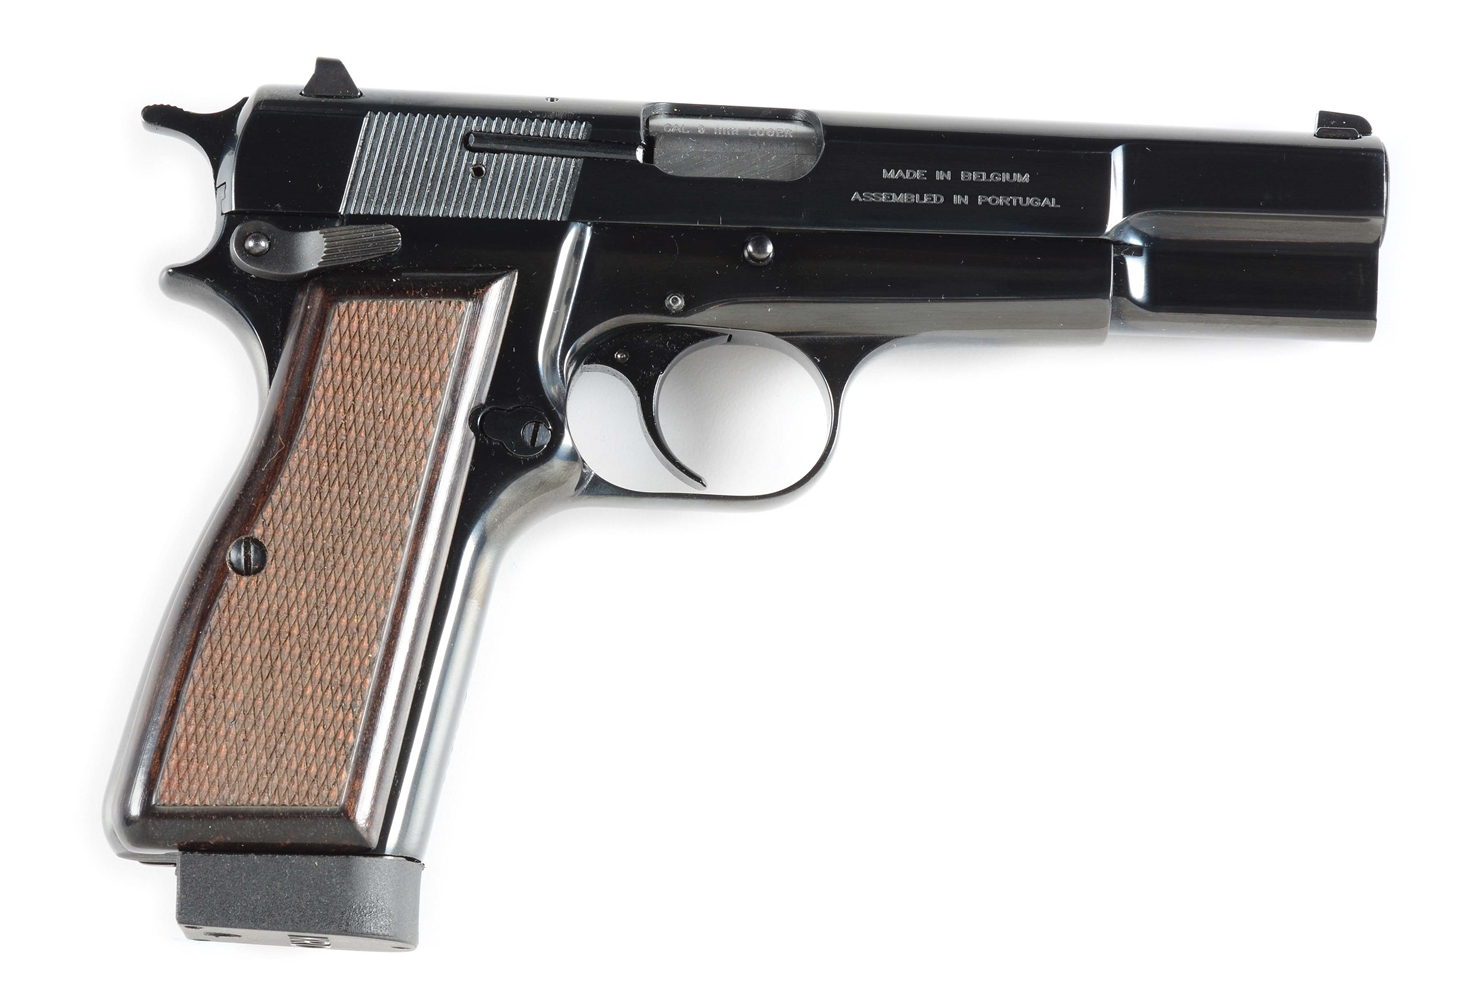 (M) Browning Hi-Power Semi-Automatic Pistol with KRD Magazines.